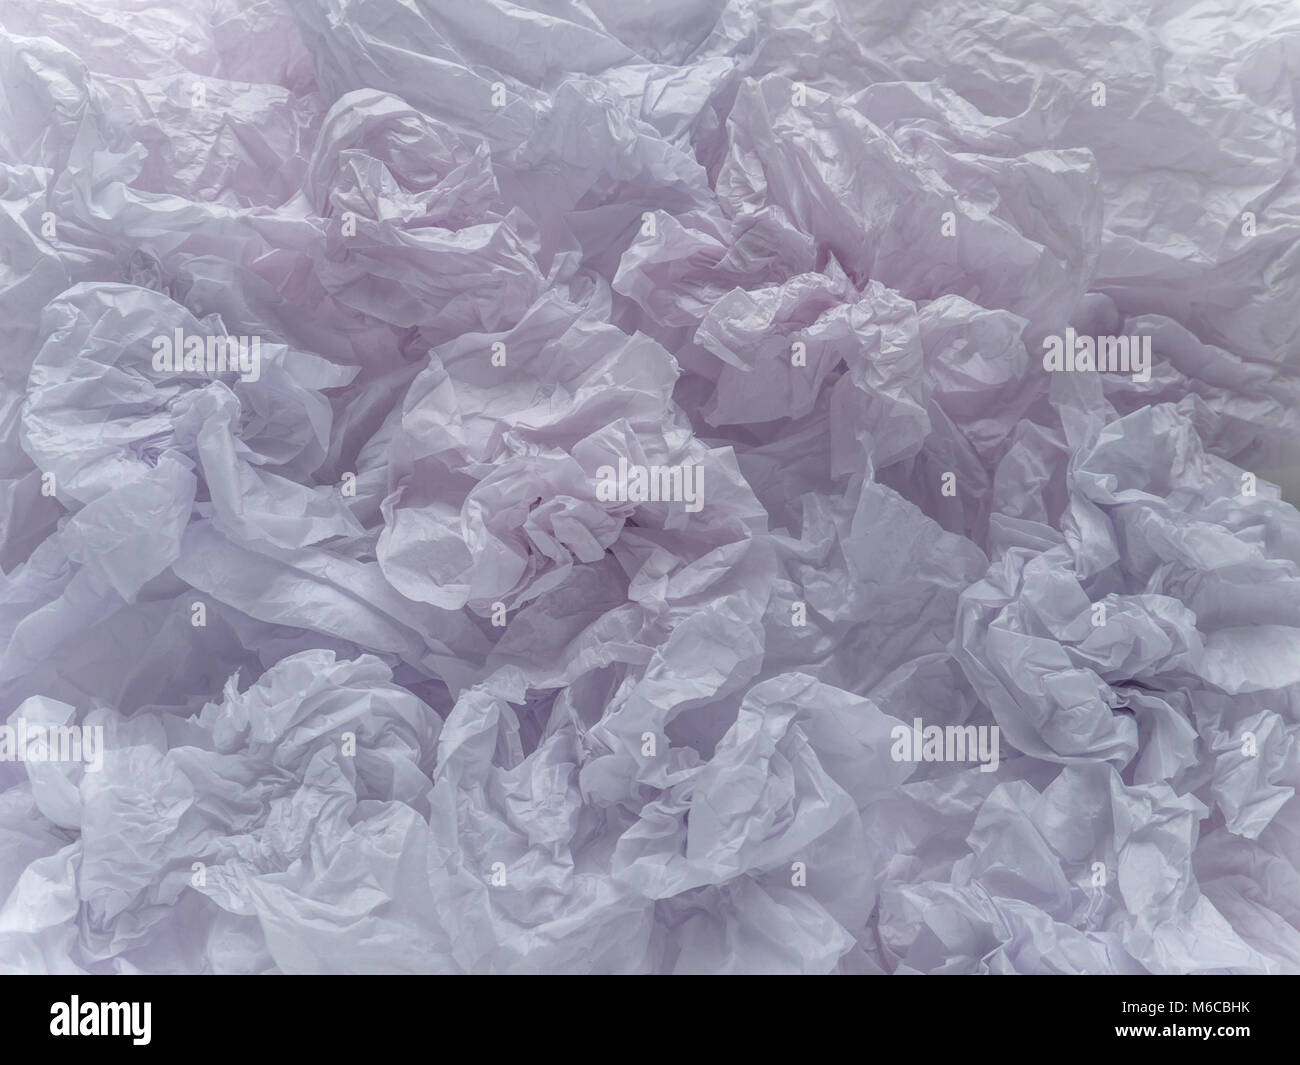 Crumpled pale pinkish violet packing paper sheets background - Stock Image